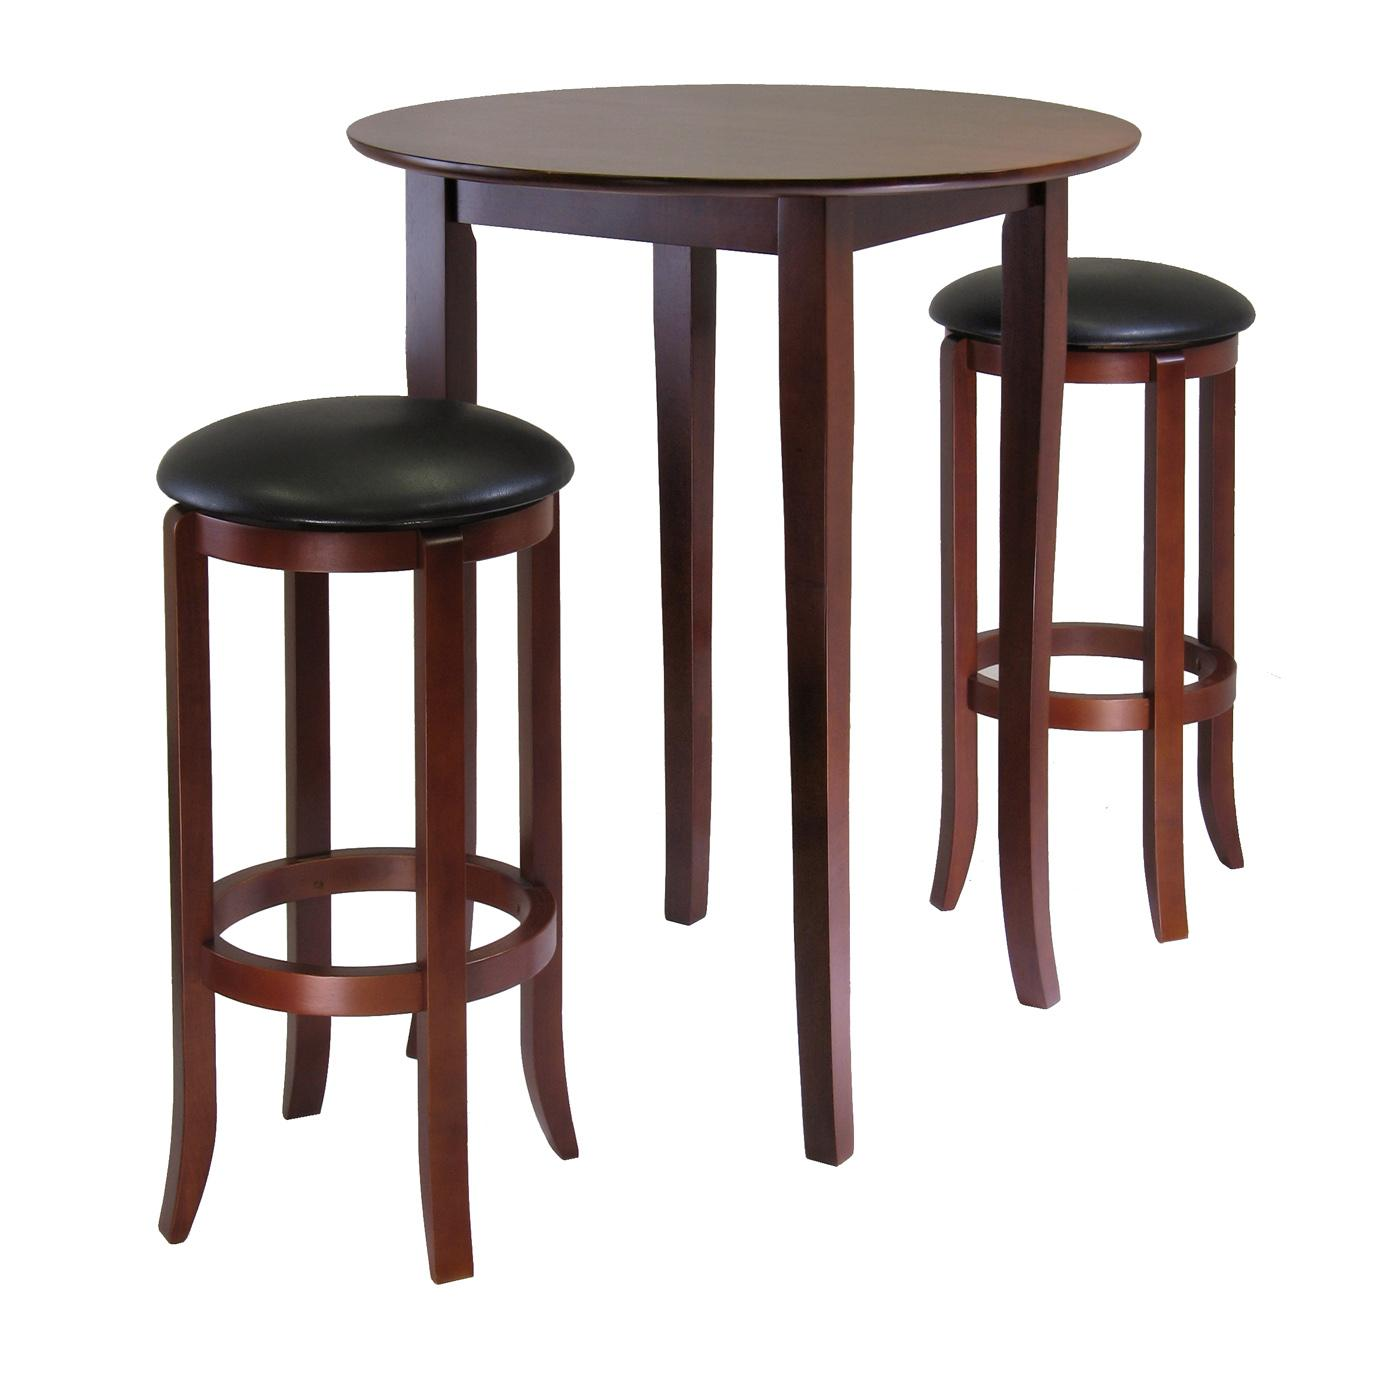 tables furniture alba education us top table group low high products df awh global